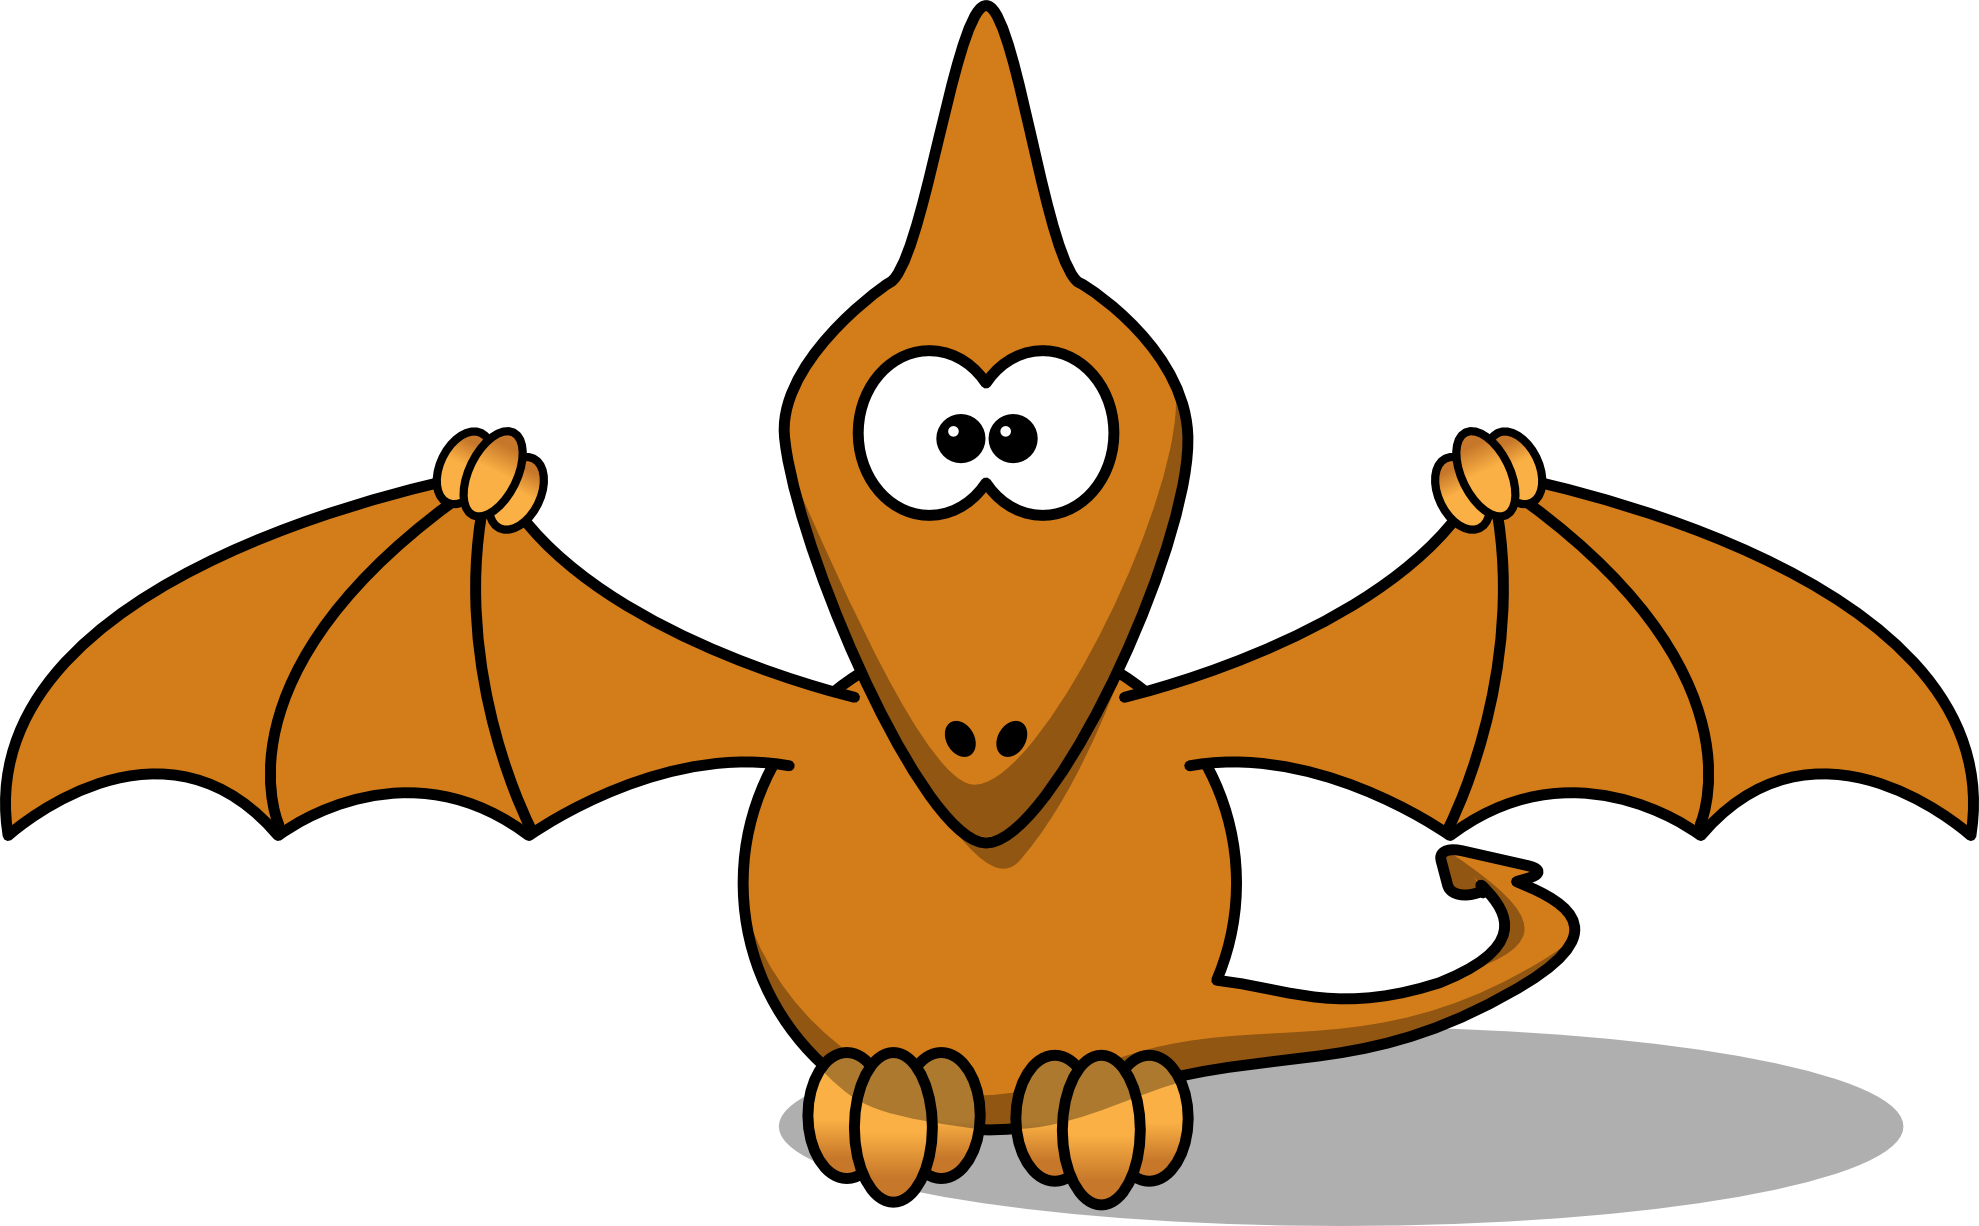 Dinosaur clipart cartoon. Dinosaurs clip arts for